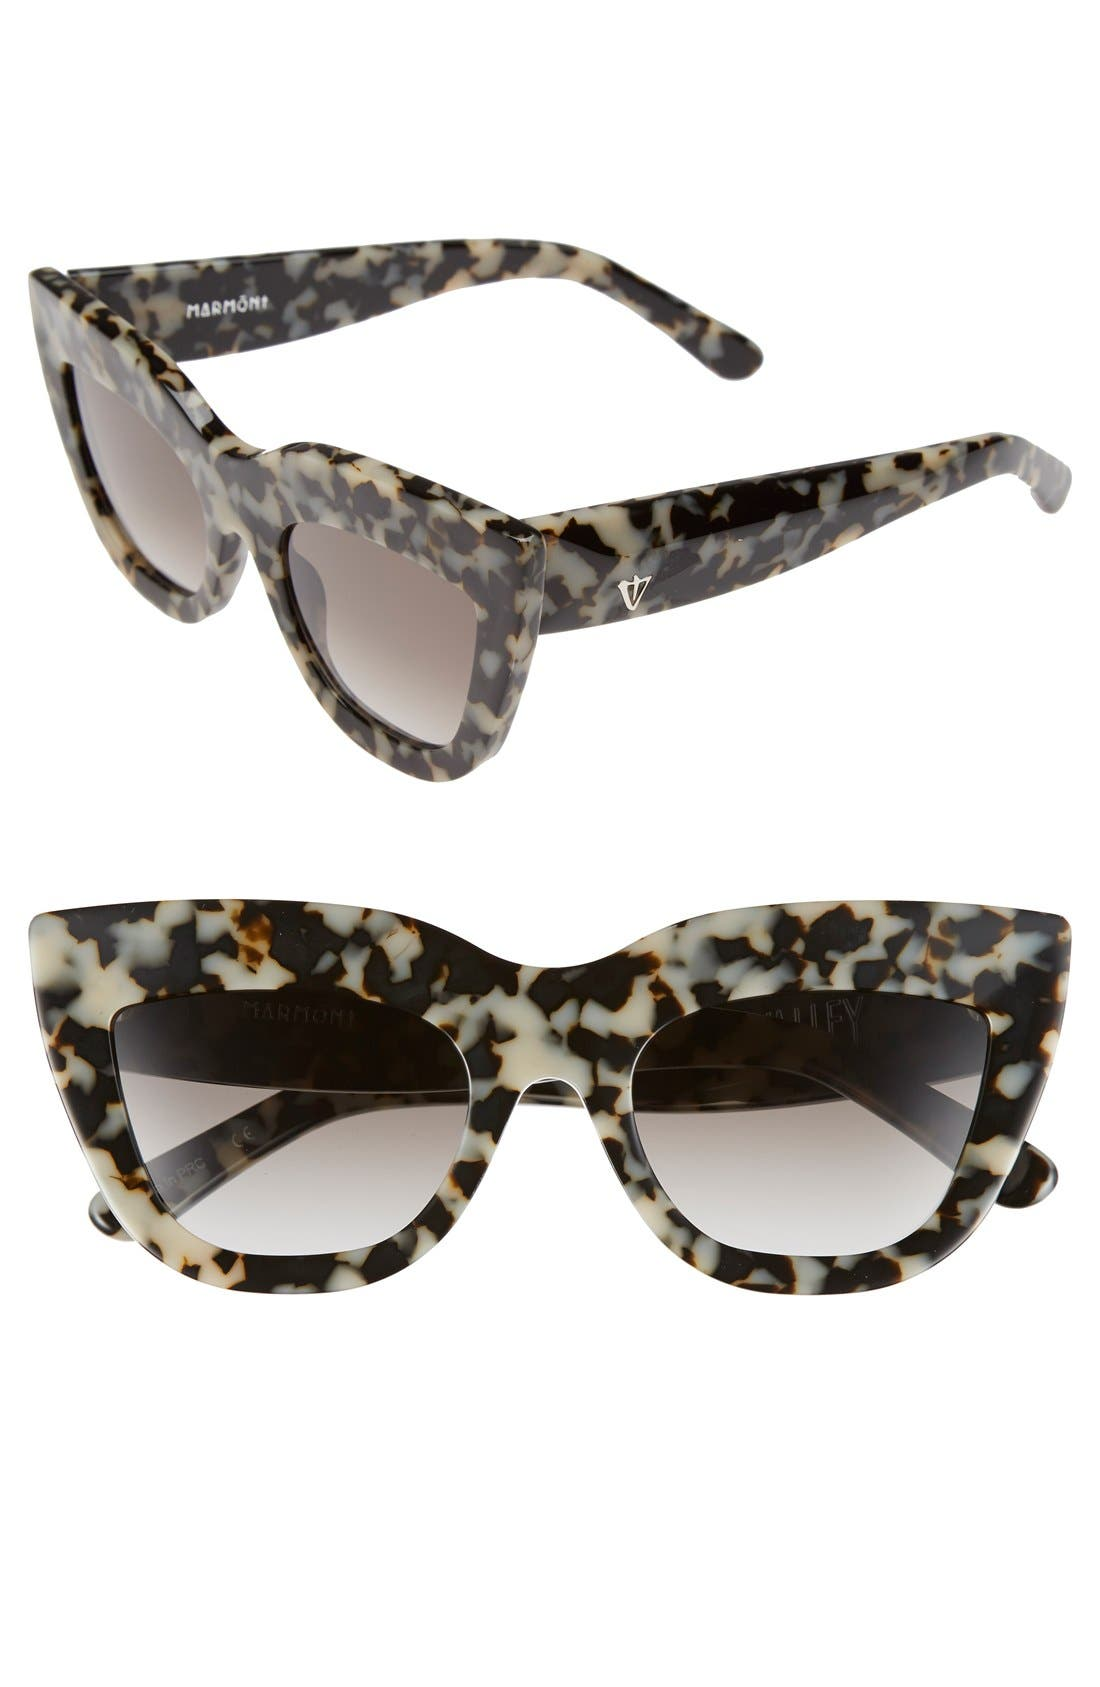 Festival Sunglasses You Can Shop Now